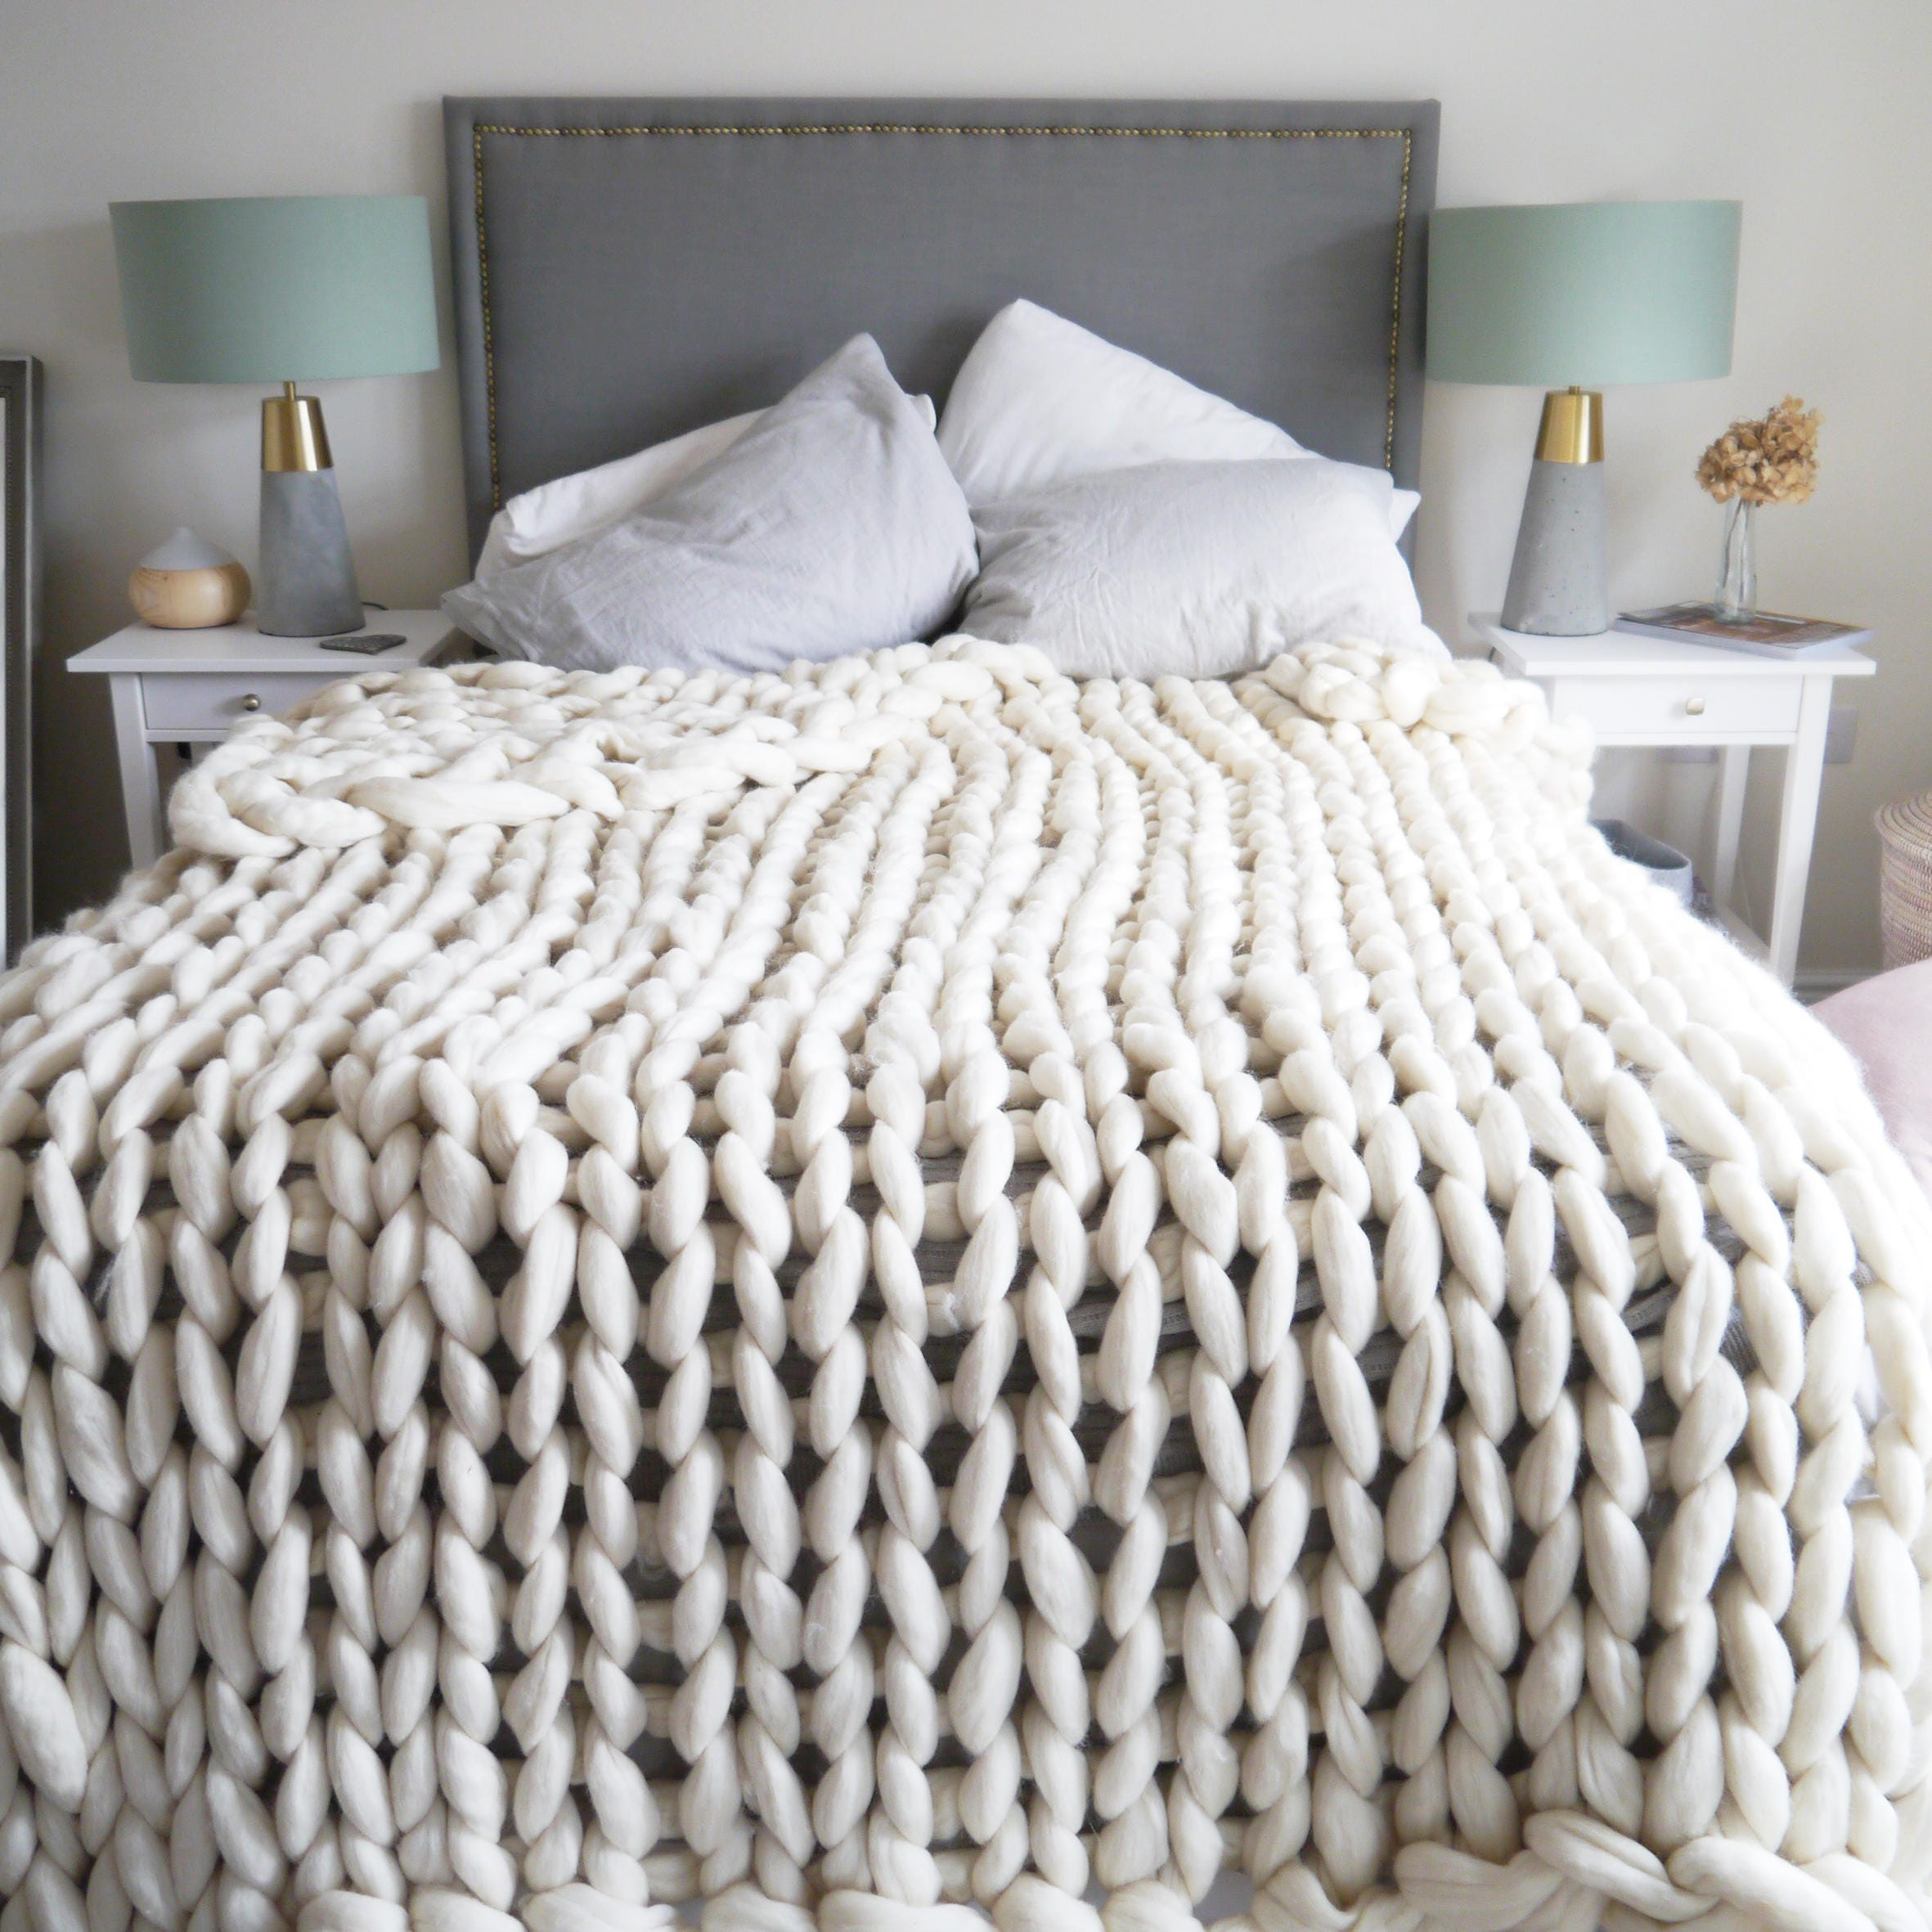 Chunky Knit Blanket DIY. The chunky knit blankets have been all the rage and the moment I saw one I knew I wanted it!! Seeing as this was a year ago believe it or not, they were priced at $$ a blanket.